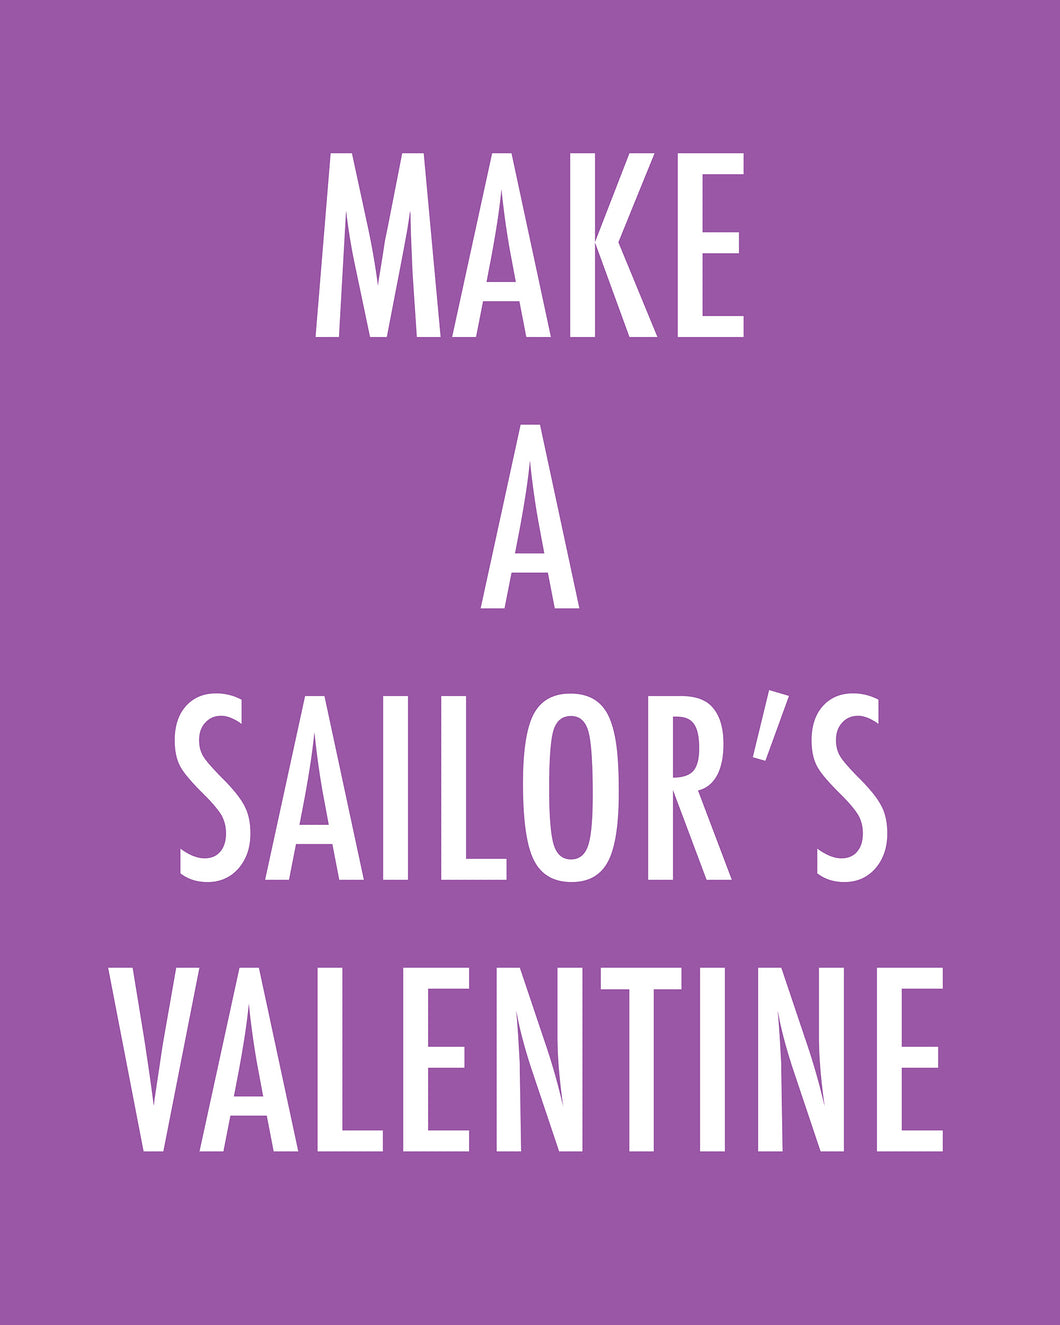 MAKE A SAILOR'S VALENTINE - Color Pop Print